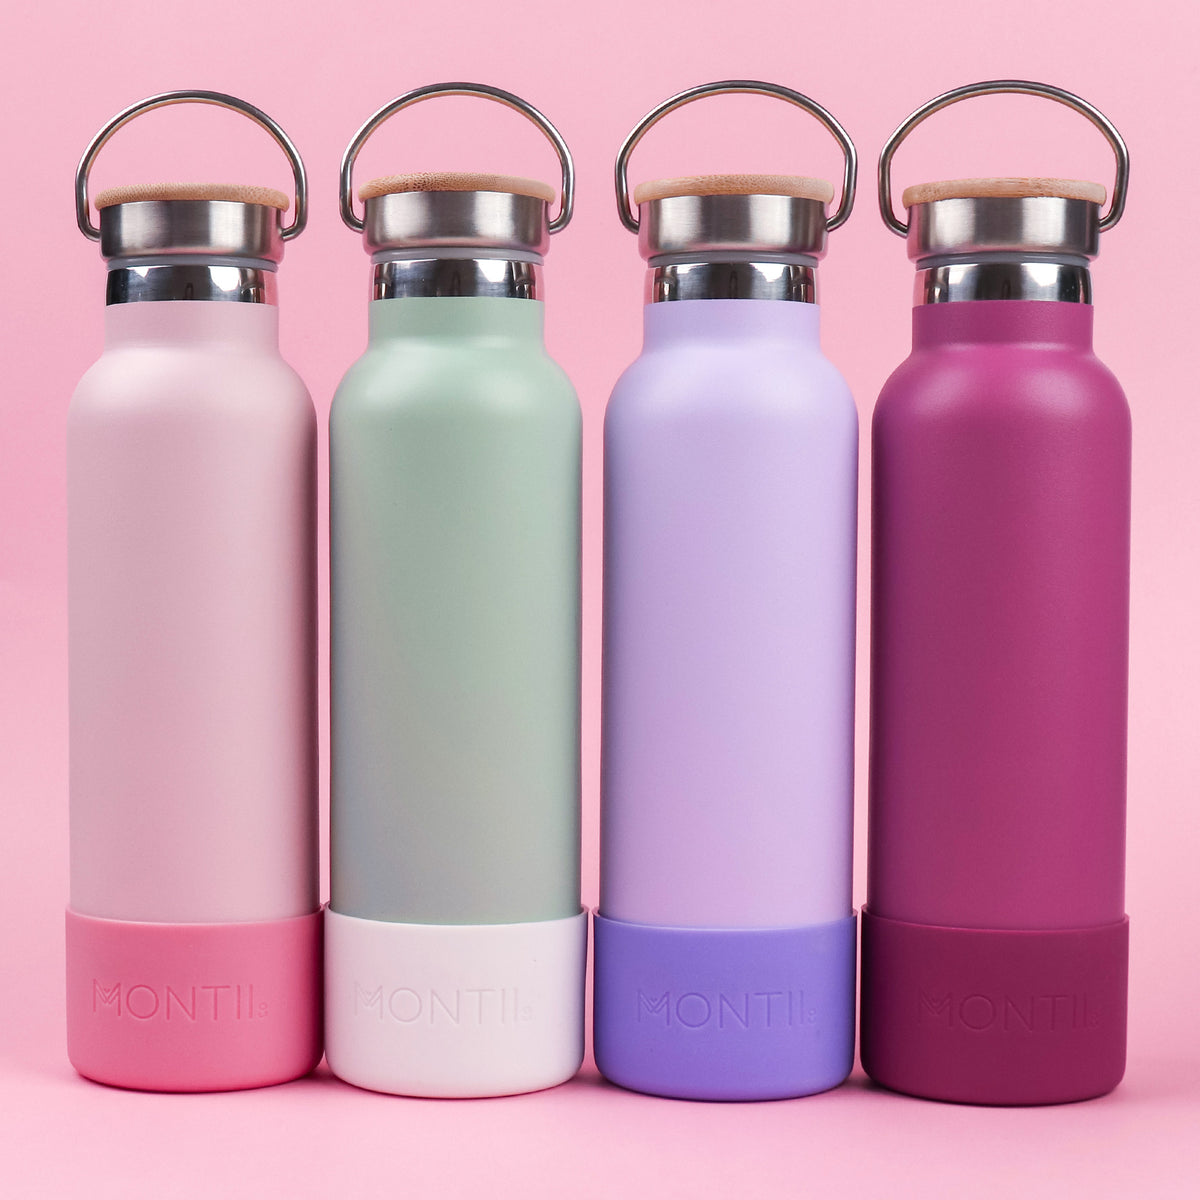 MontiiCo Original Drink Bottle - Rose-Drink Bottle-Lunchbox Mini